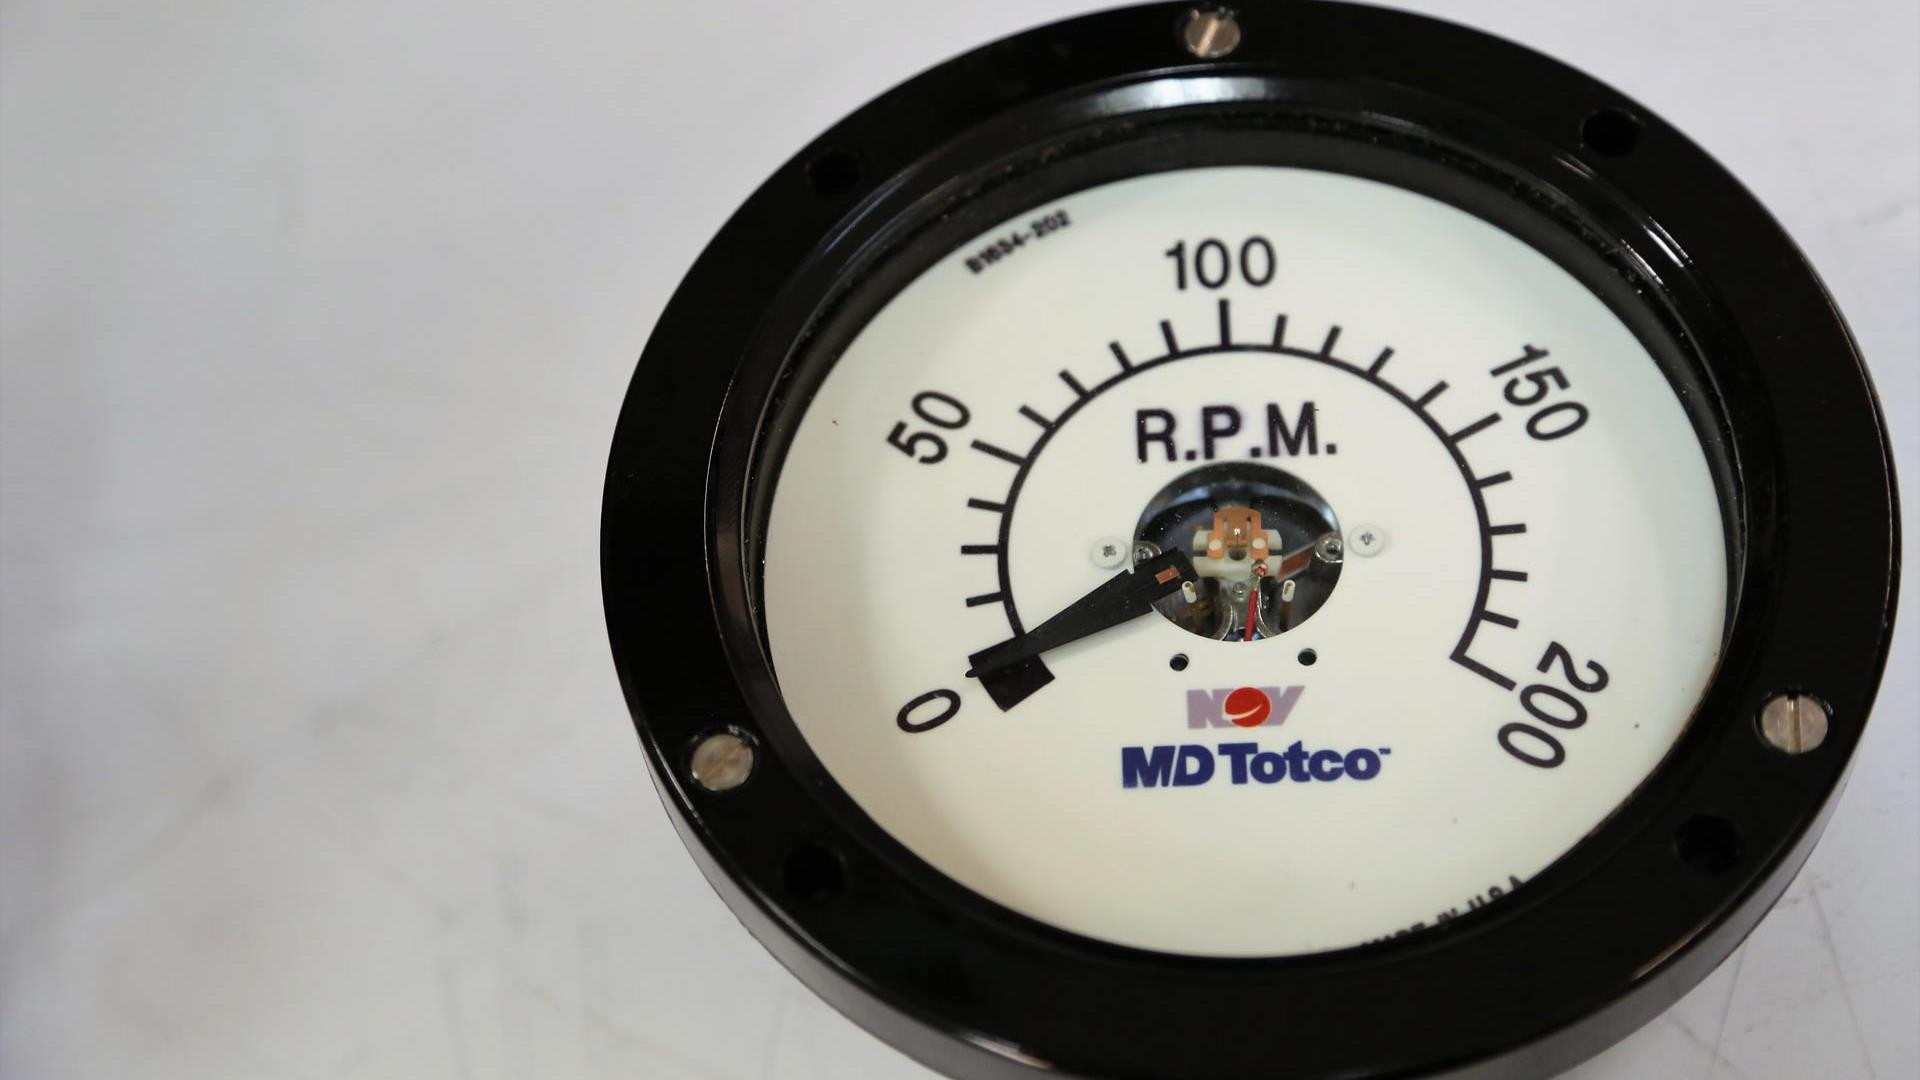 A closeup of an RPM gauge on a M/D Totco system